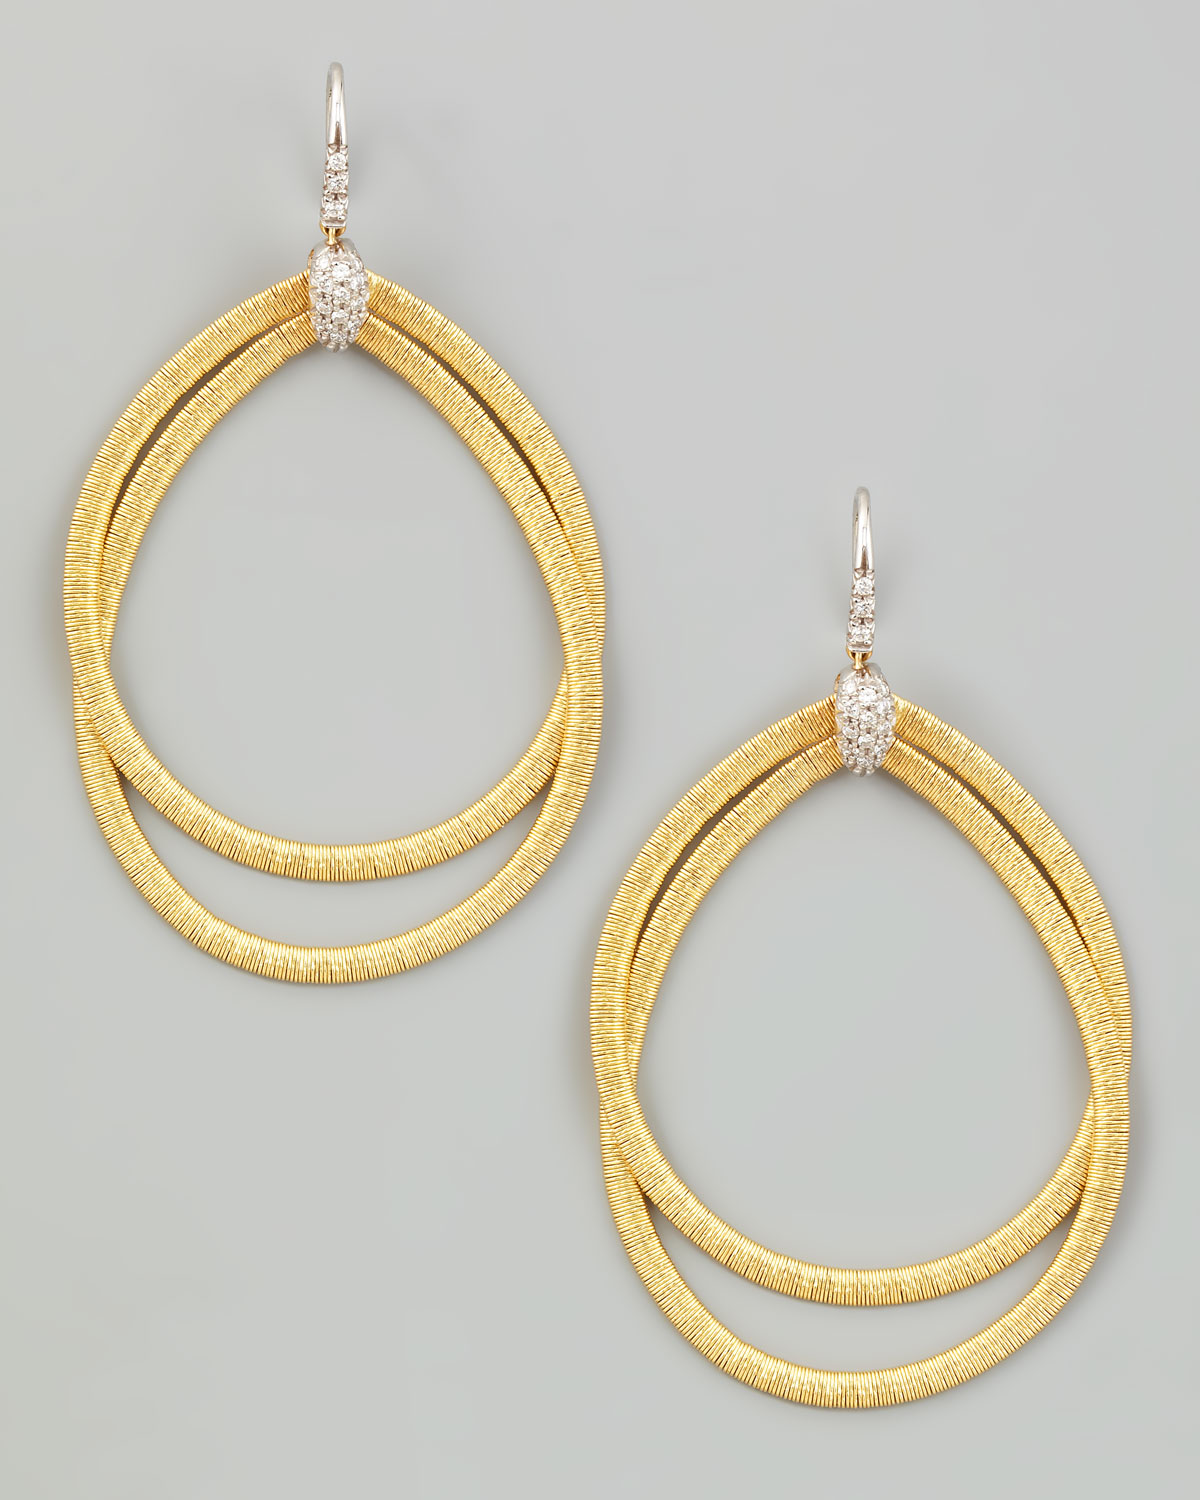 Marco Bicego Diamond Cairo 18k Serpentine-Drop Earrings da6YiDnIsV